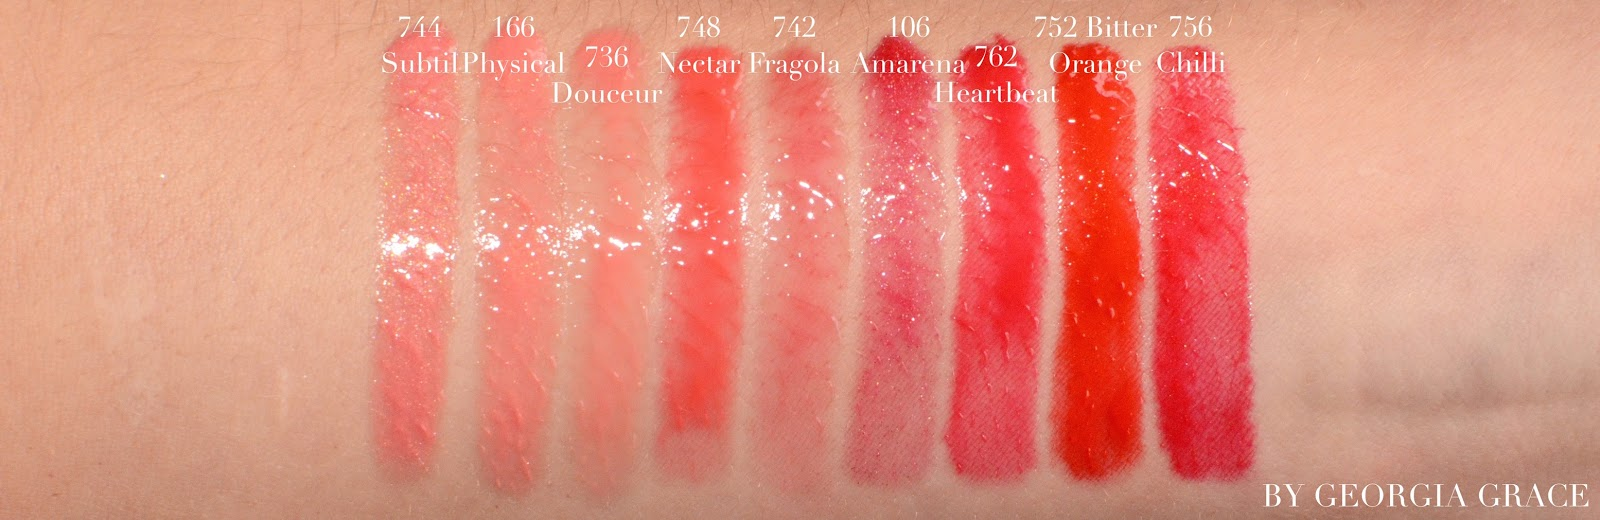 chanel rouge coco gloss swatches review photos comparison subtil physical douceur nectar fragola amarena heartbeat bitter orange chilli